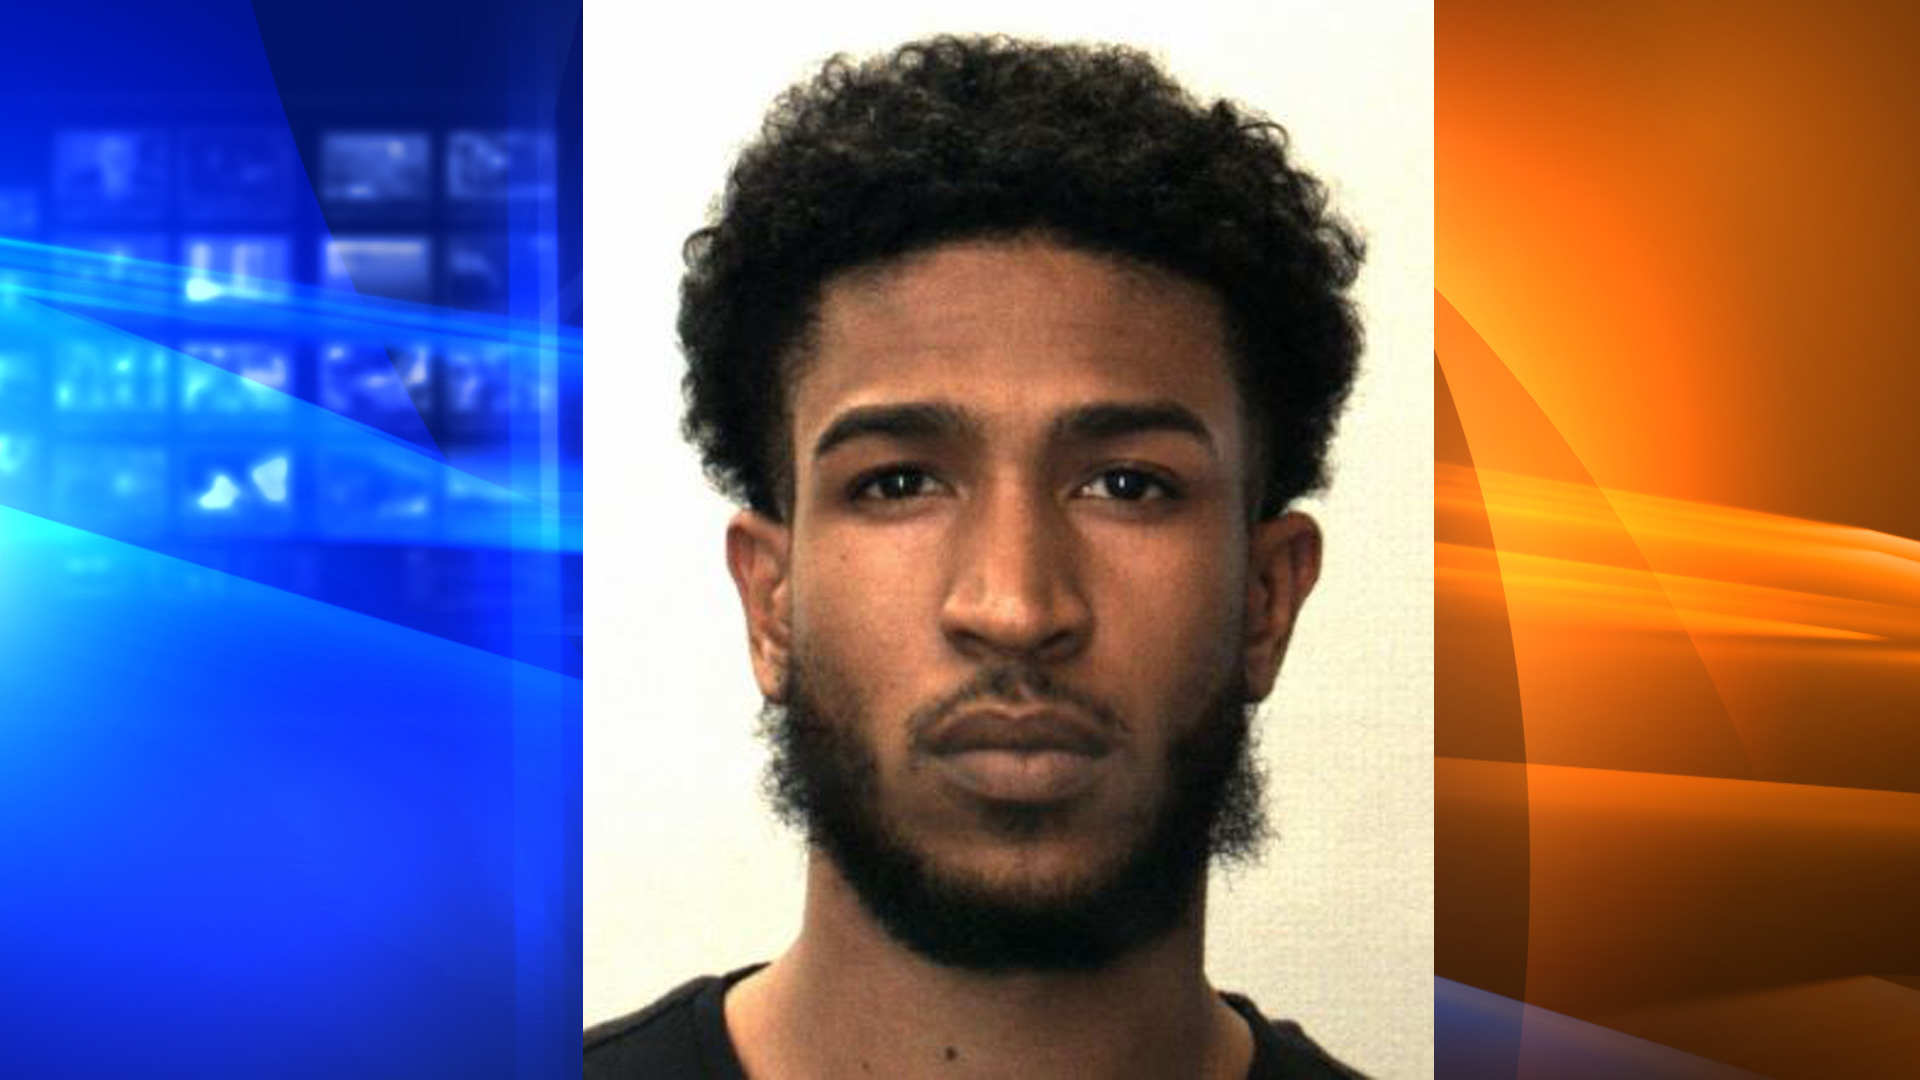 Man 23 years old Arrest made